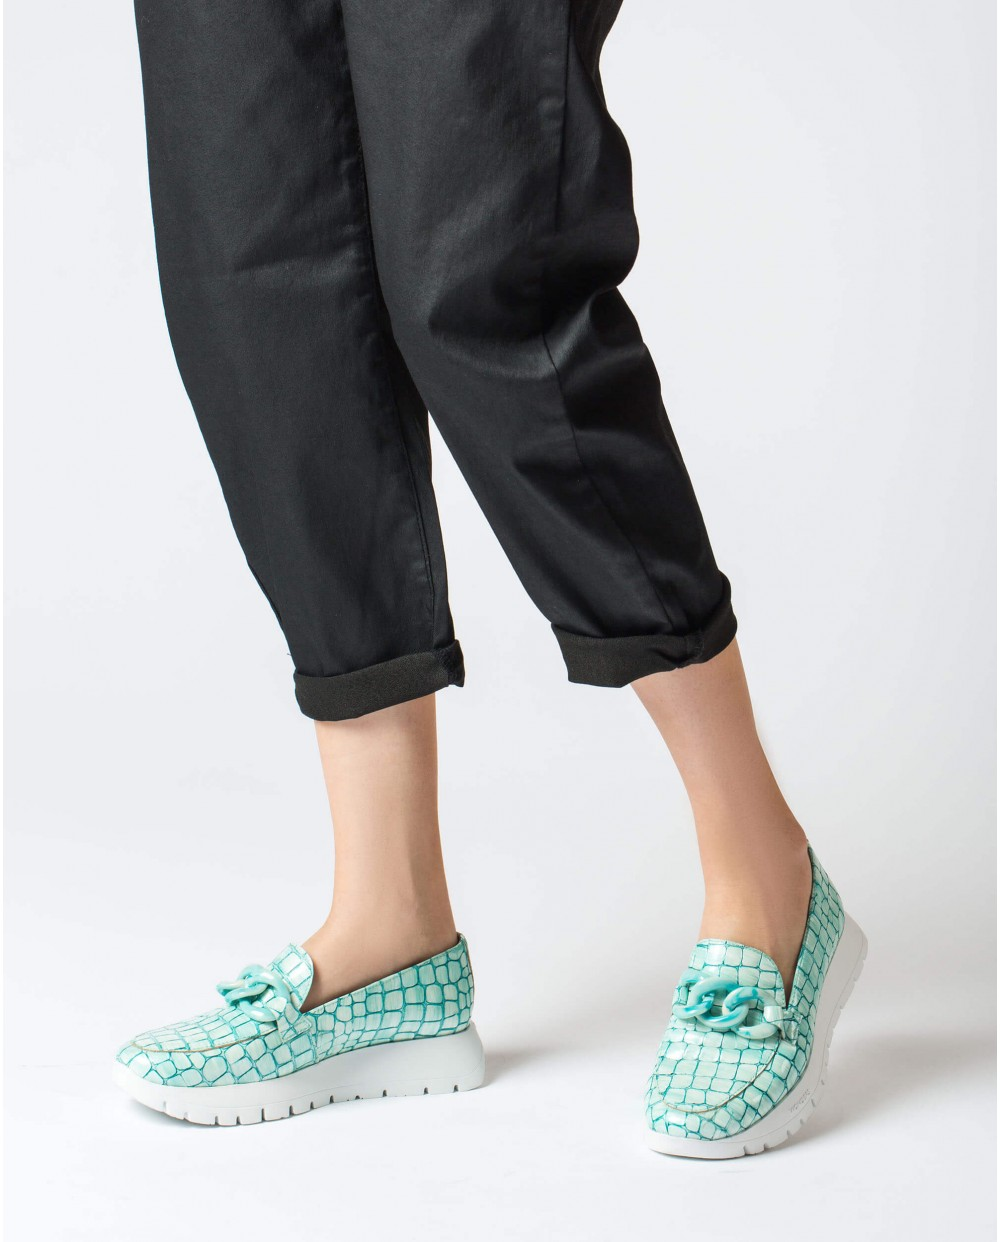 Wonders-Flat Shoes-Patent leather chain moccasin